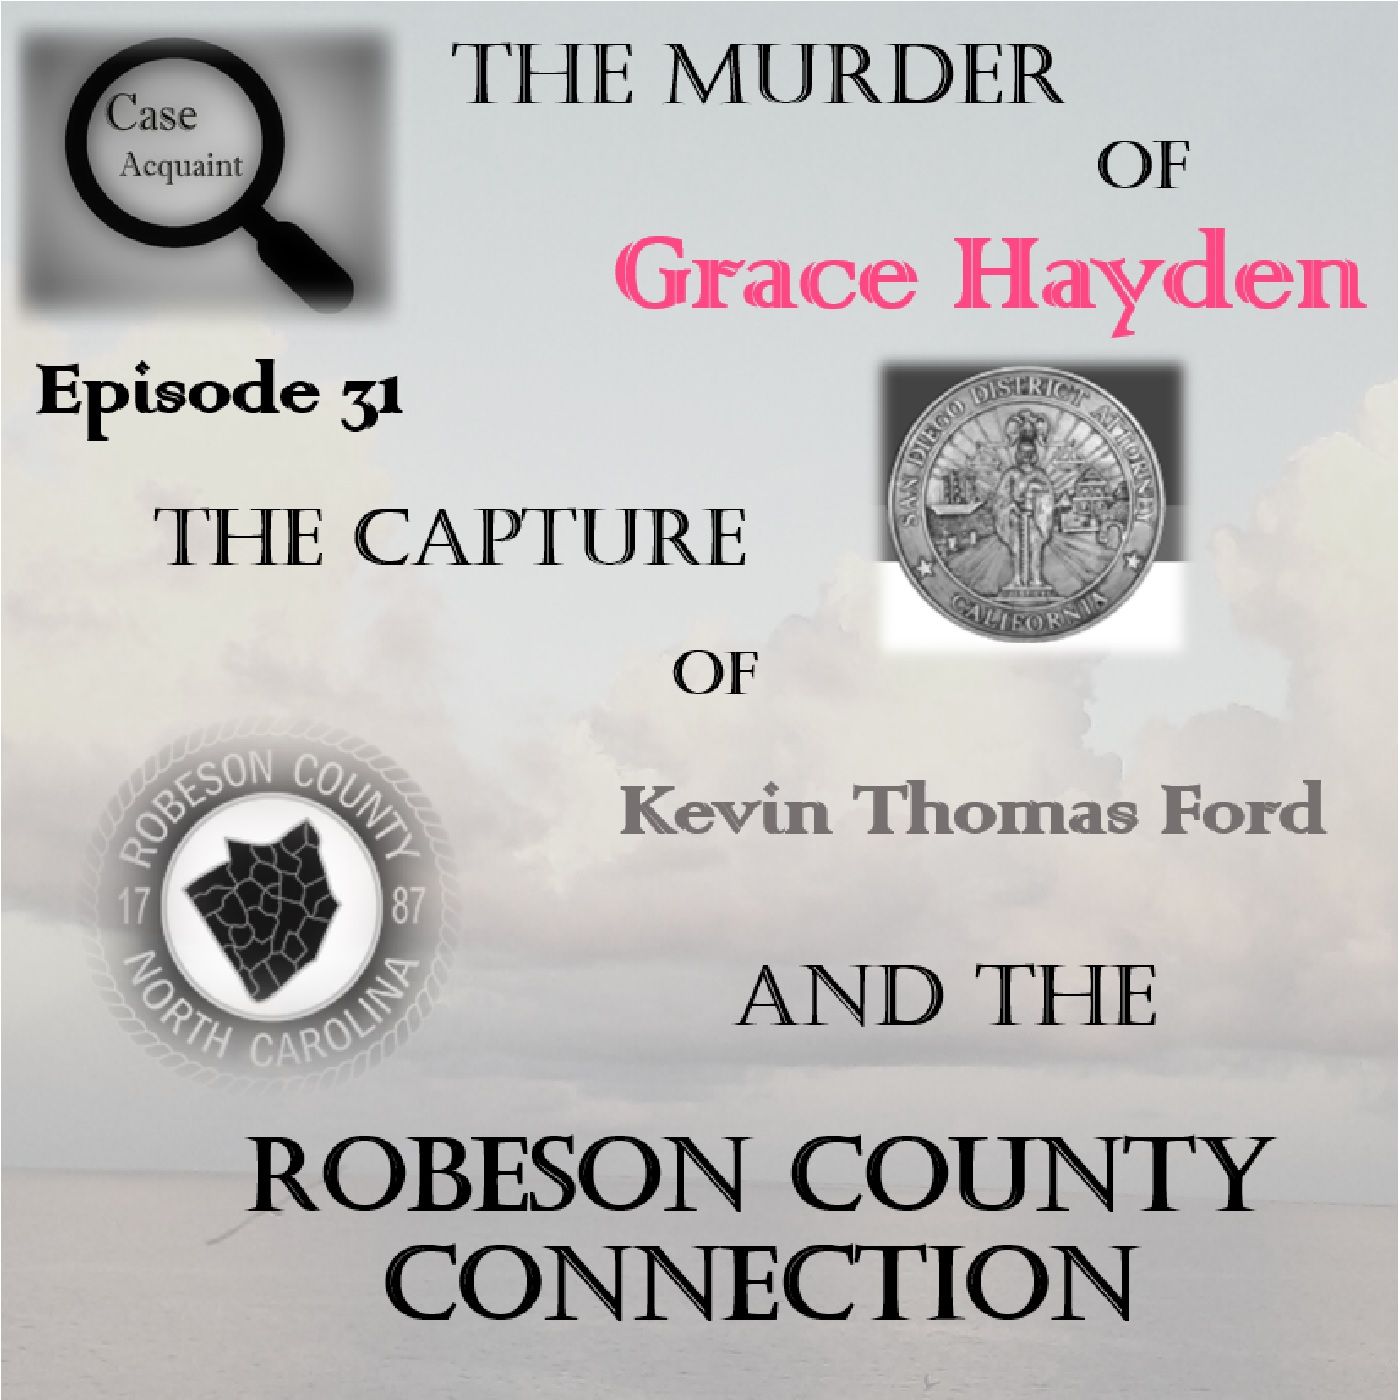 Episode 31 The Murder of Grace Hayden, the Capture of Kevin Thomas Ford, and the Robeson County Connection